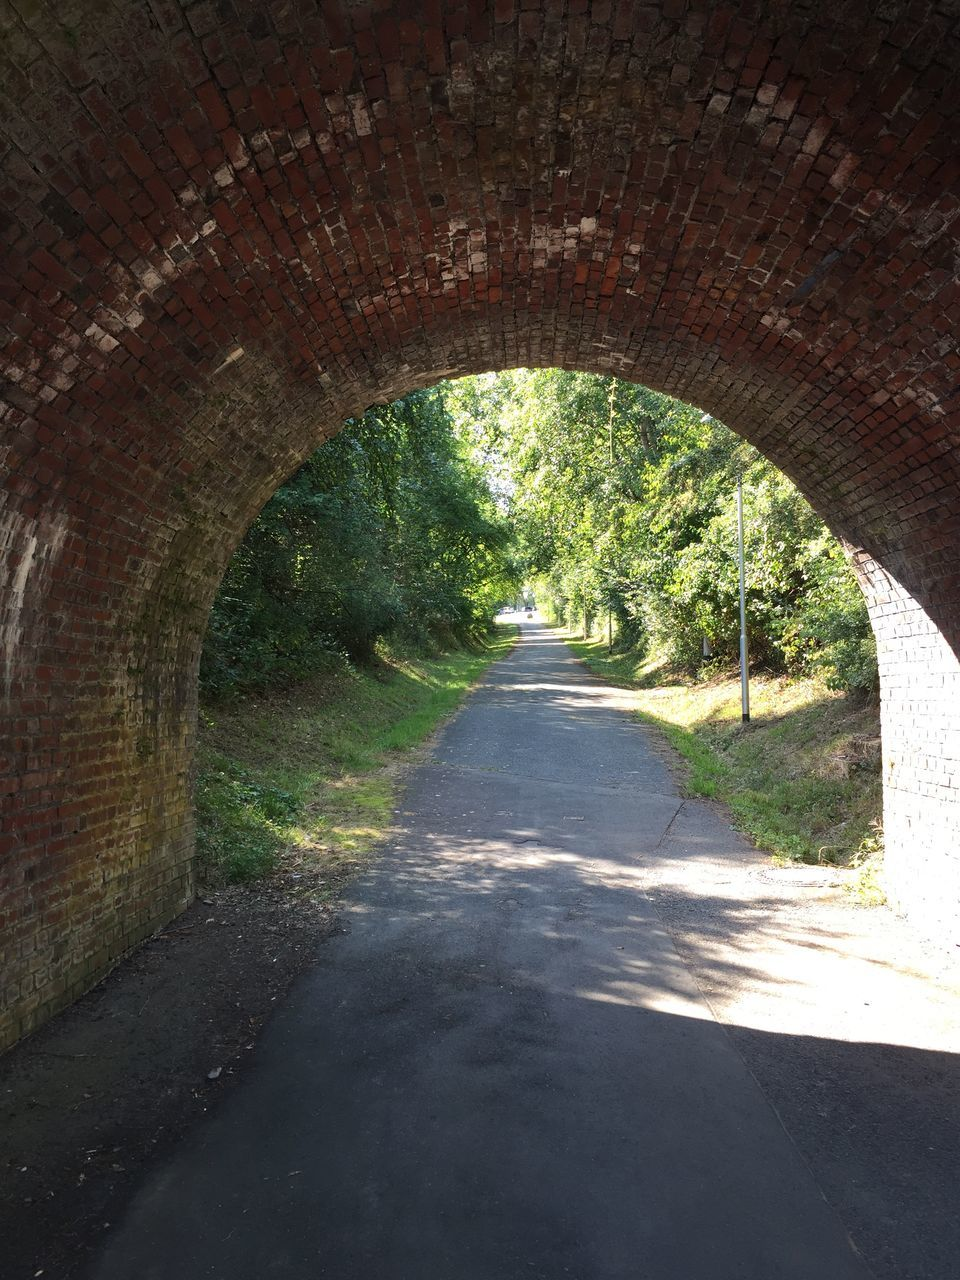 the way forward, direction, arch, architecture, road, day, tree, nature, no people, transportation, tunnel, plant, diminishing perspective, built structure, sunlight, outdoors, empty, shadow, vanishing point, footpath, light at the end of the tunnel